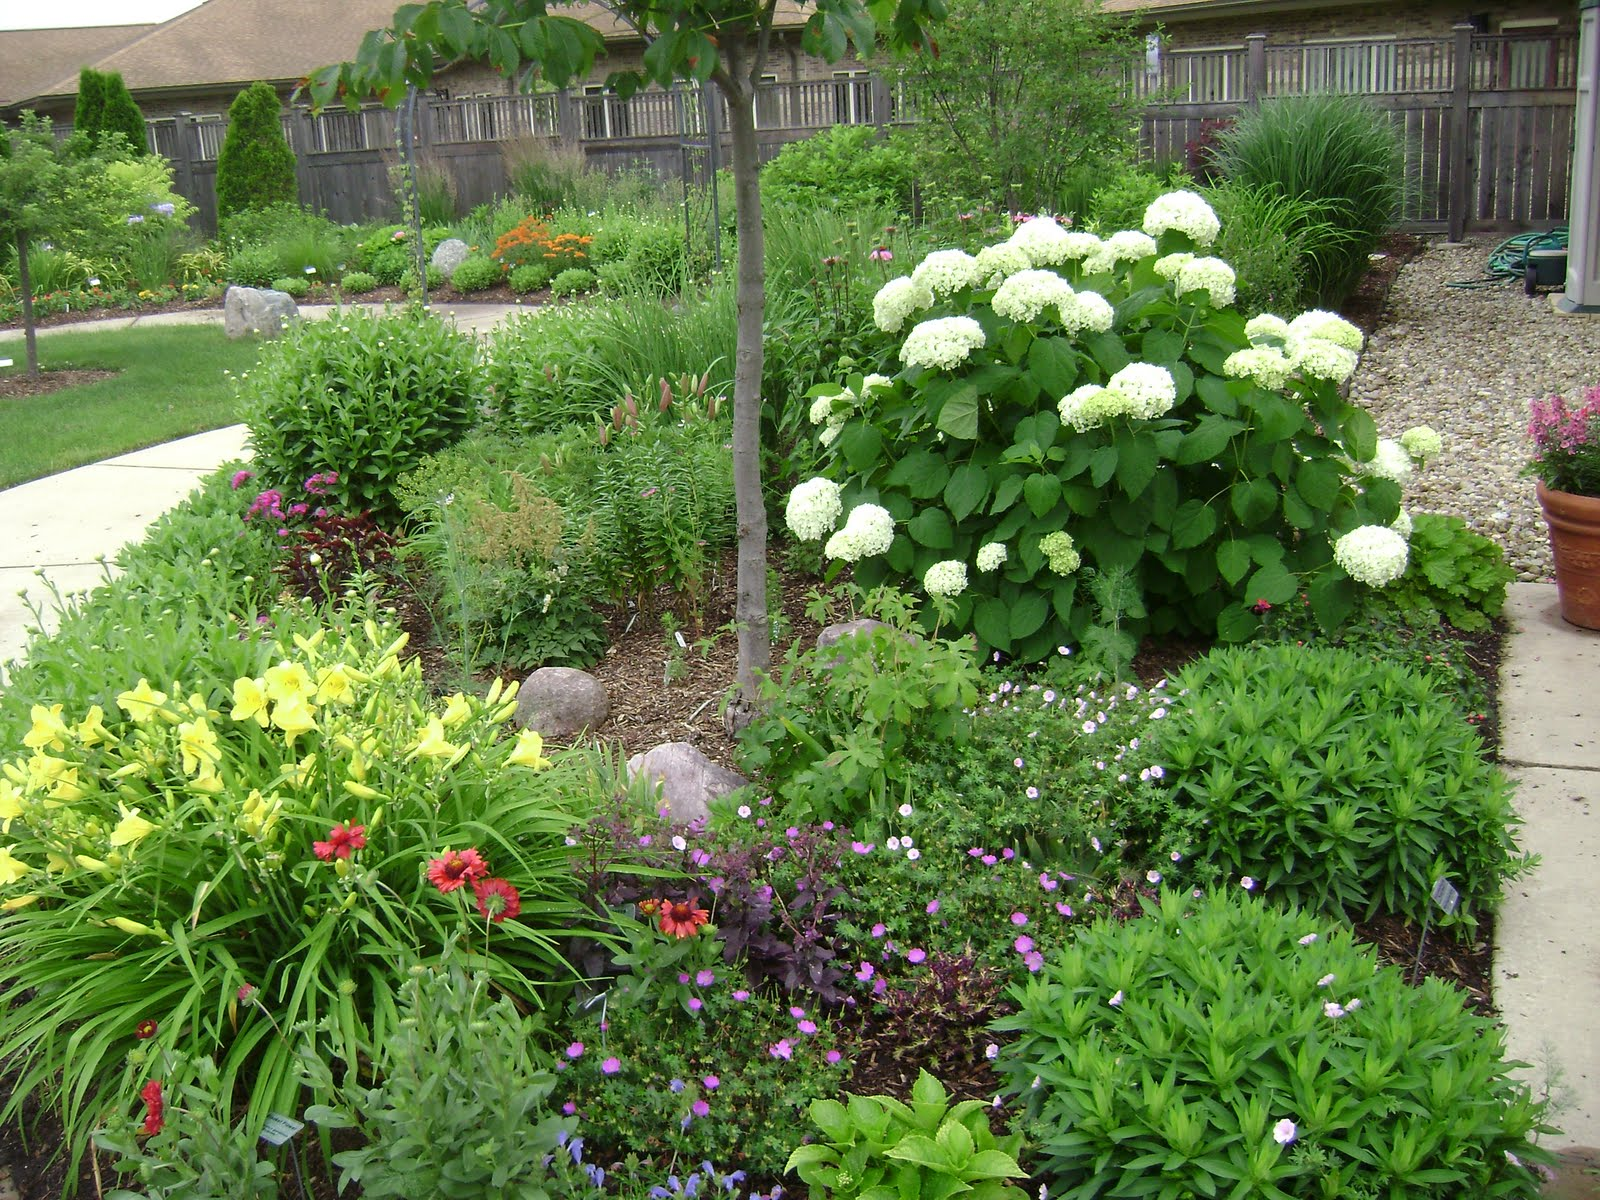 Prairie Rose's Garden: June 2011